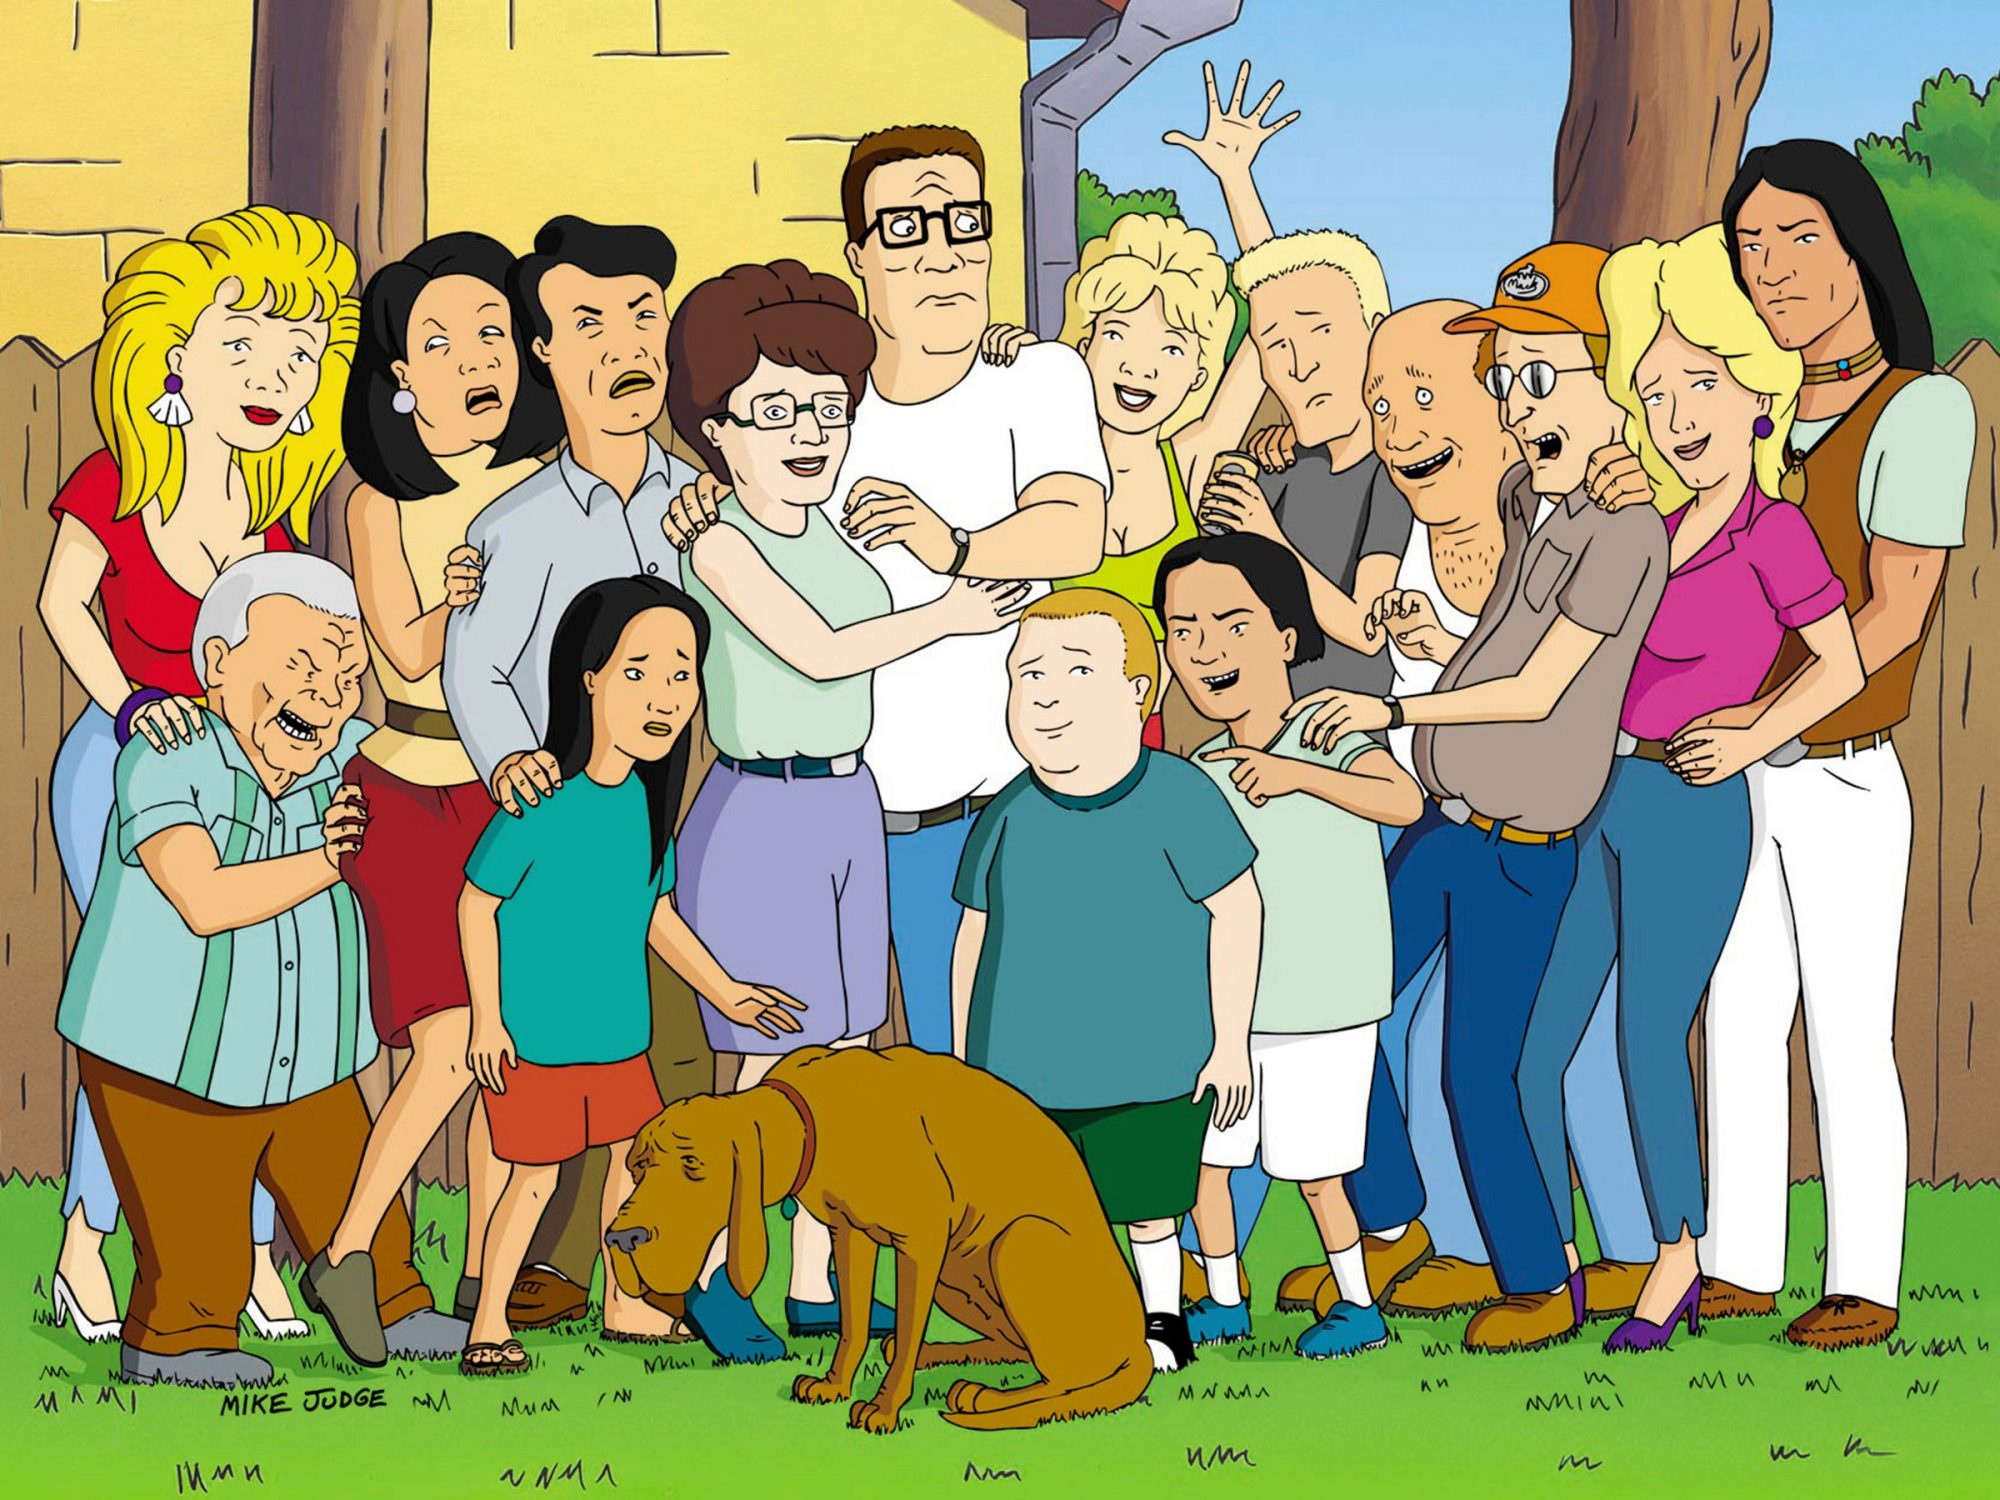 KING OF THE HILL, 1997-, TM and Copyright © 20th Century Fox Film Corp. All rights reserved, Courtes